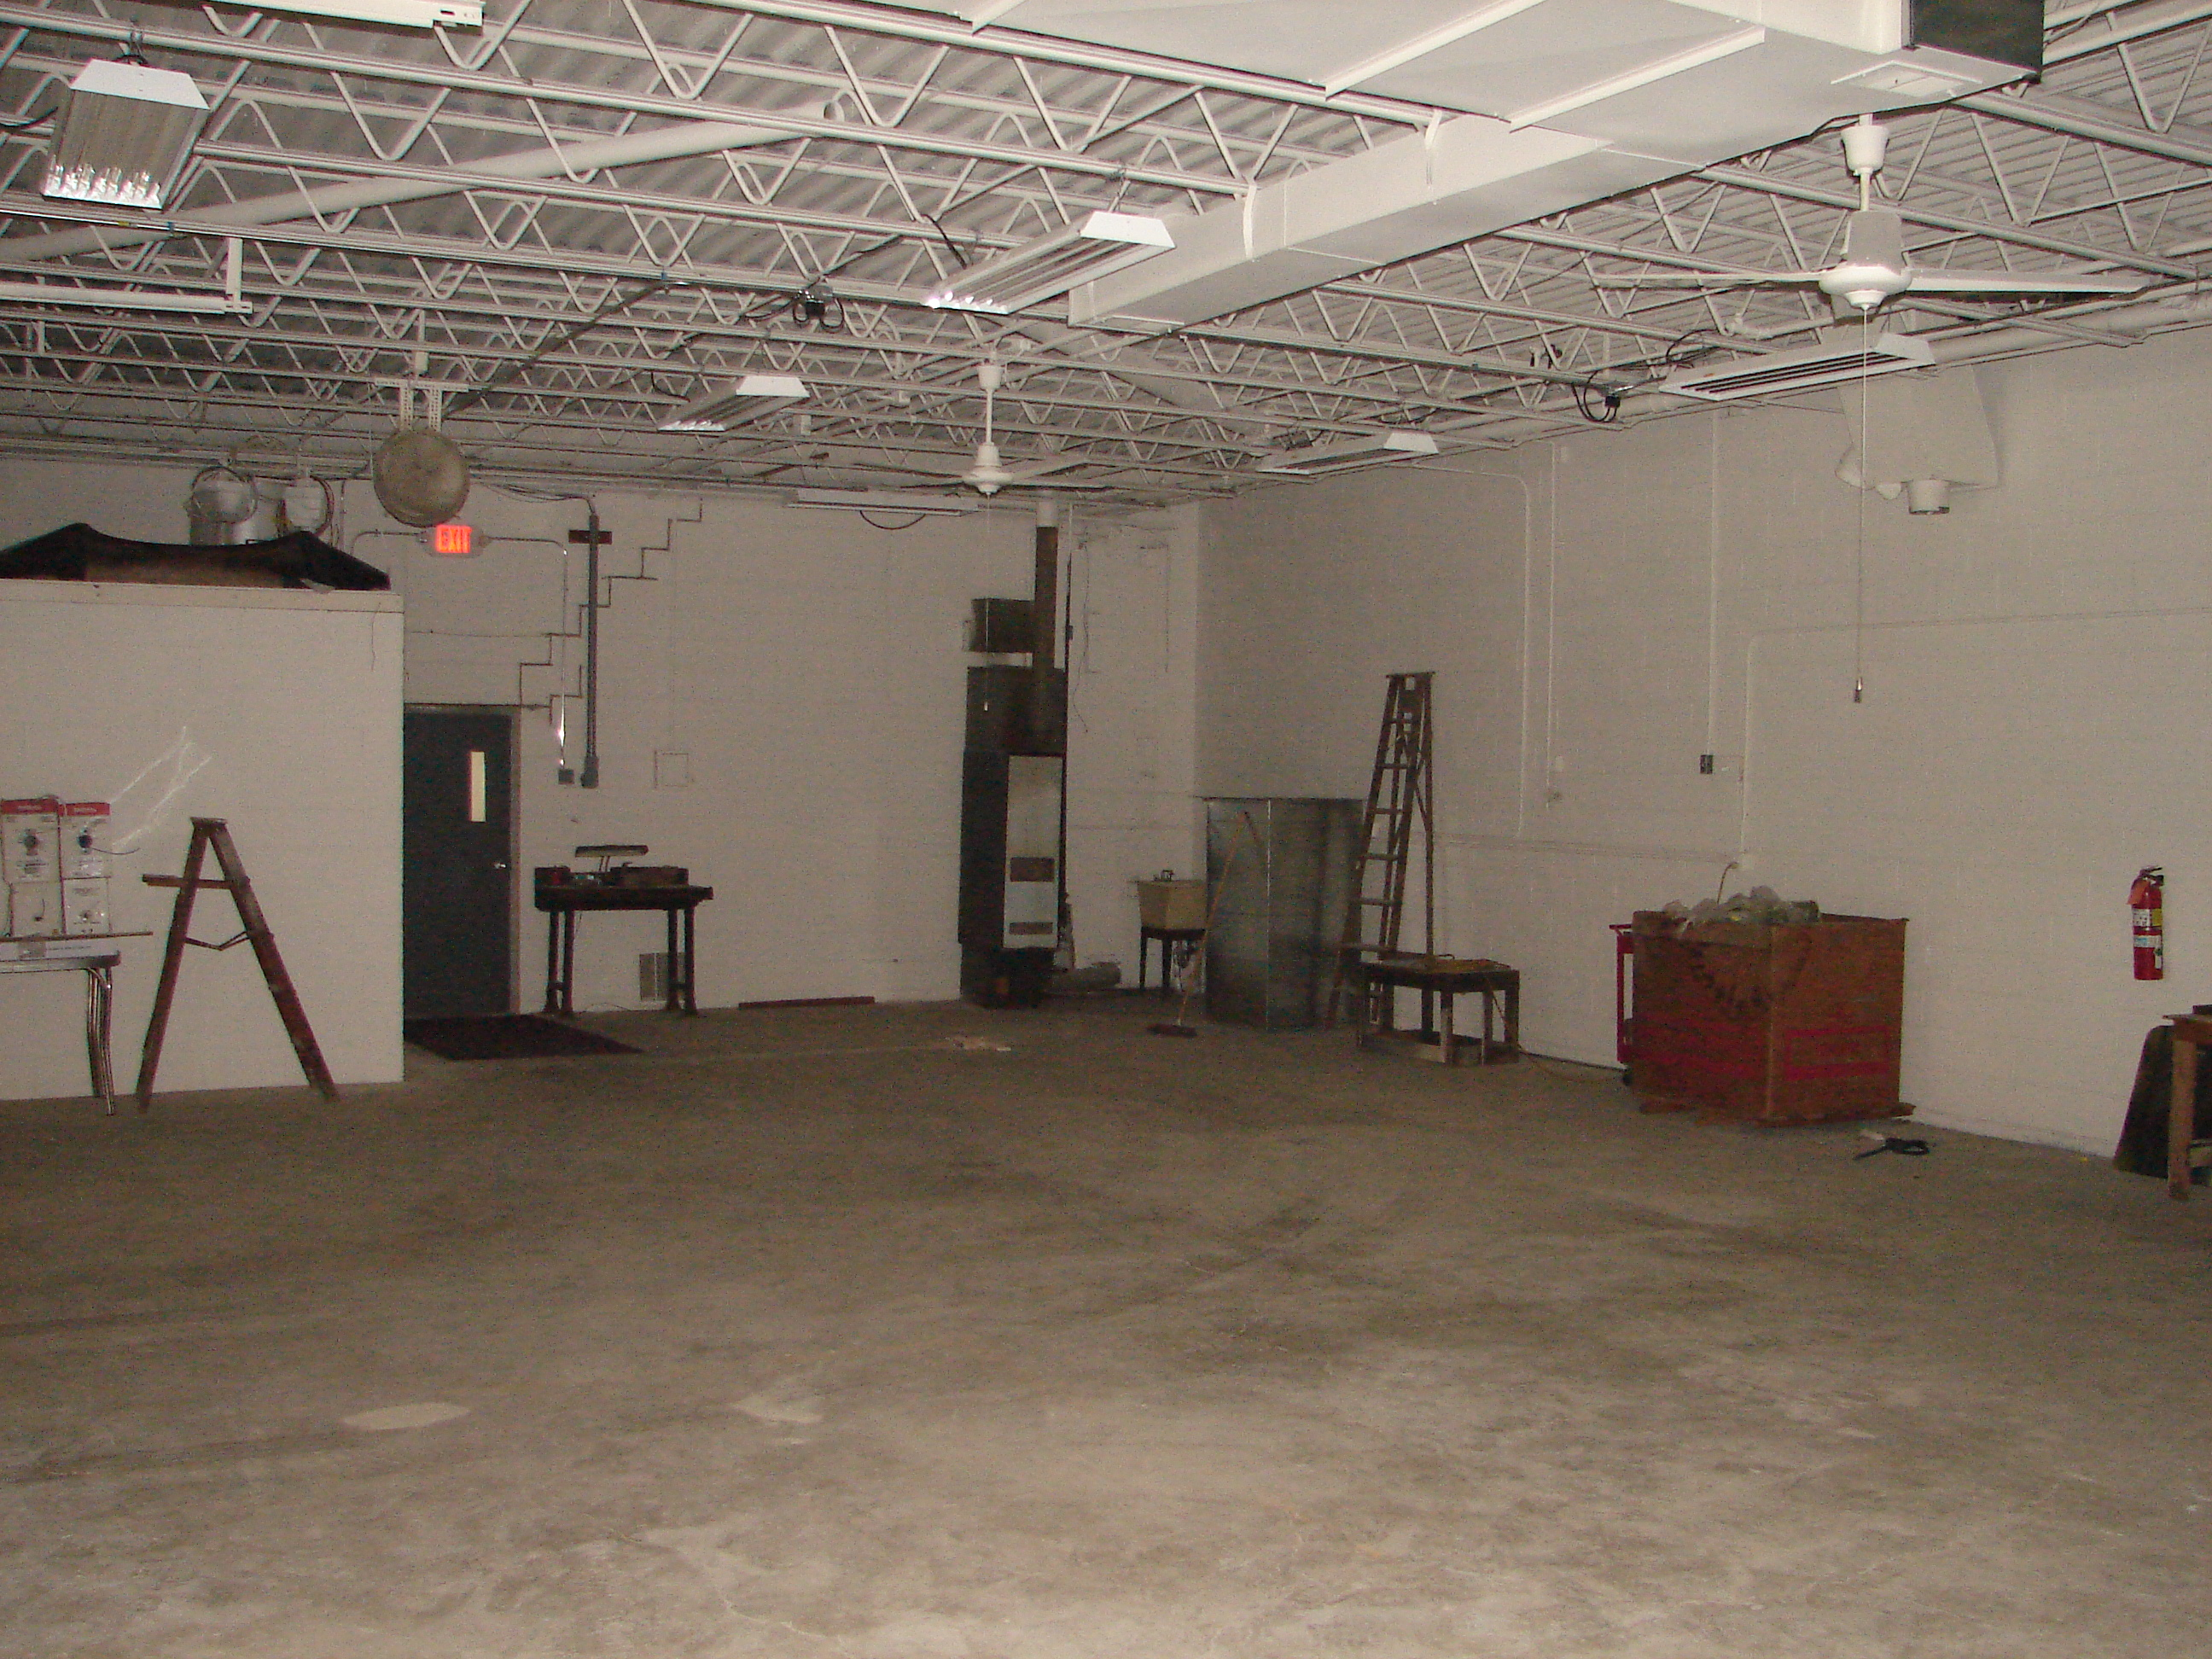 former paint booth area